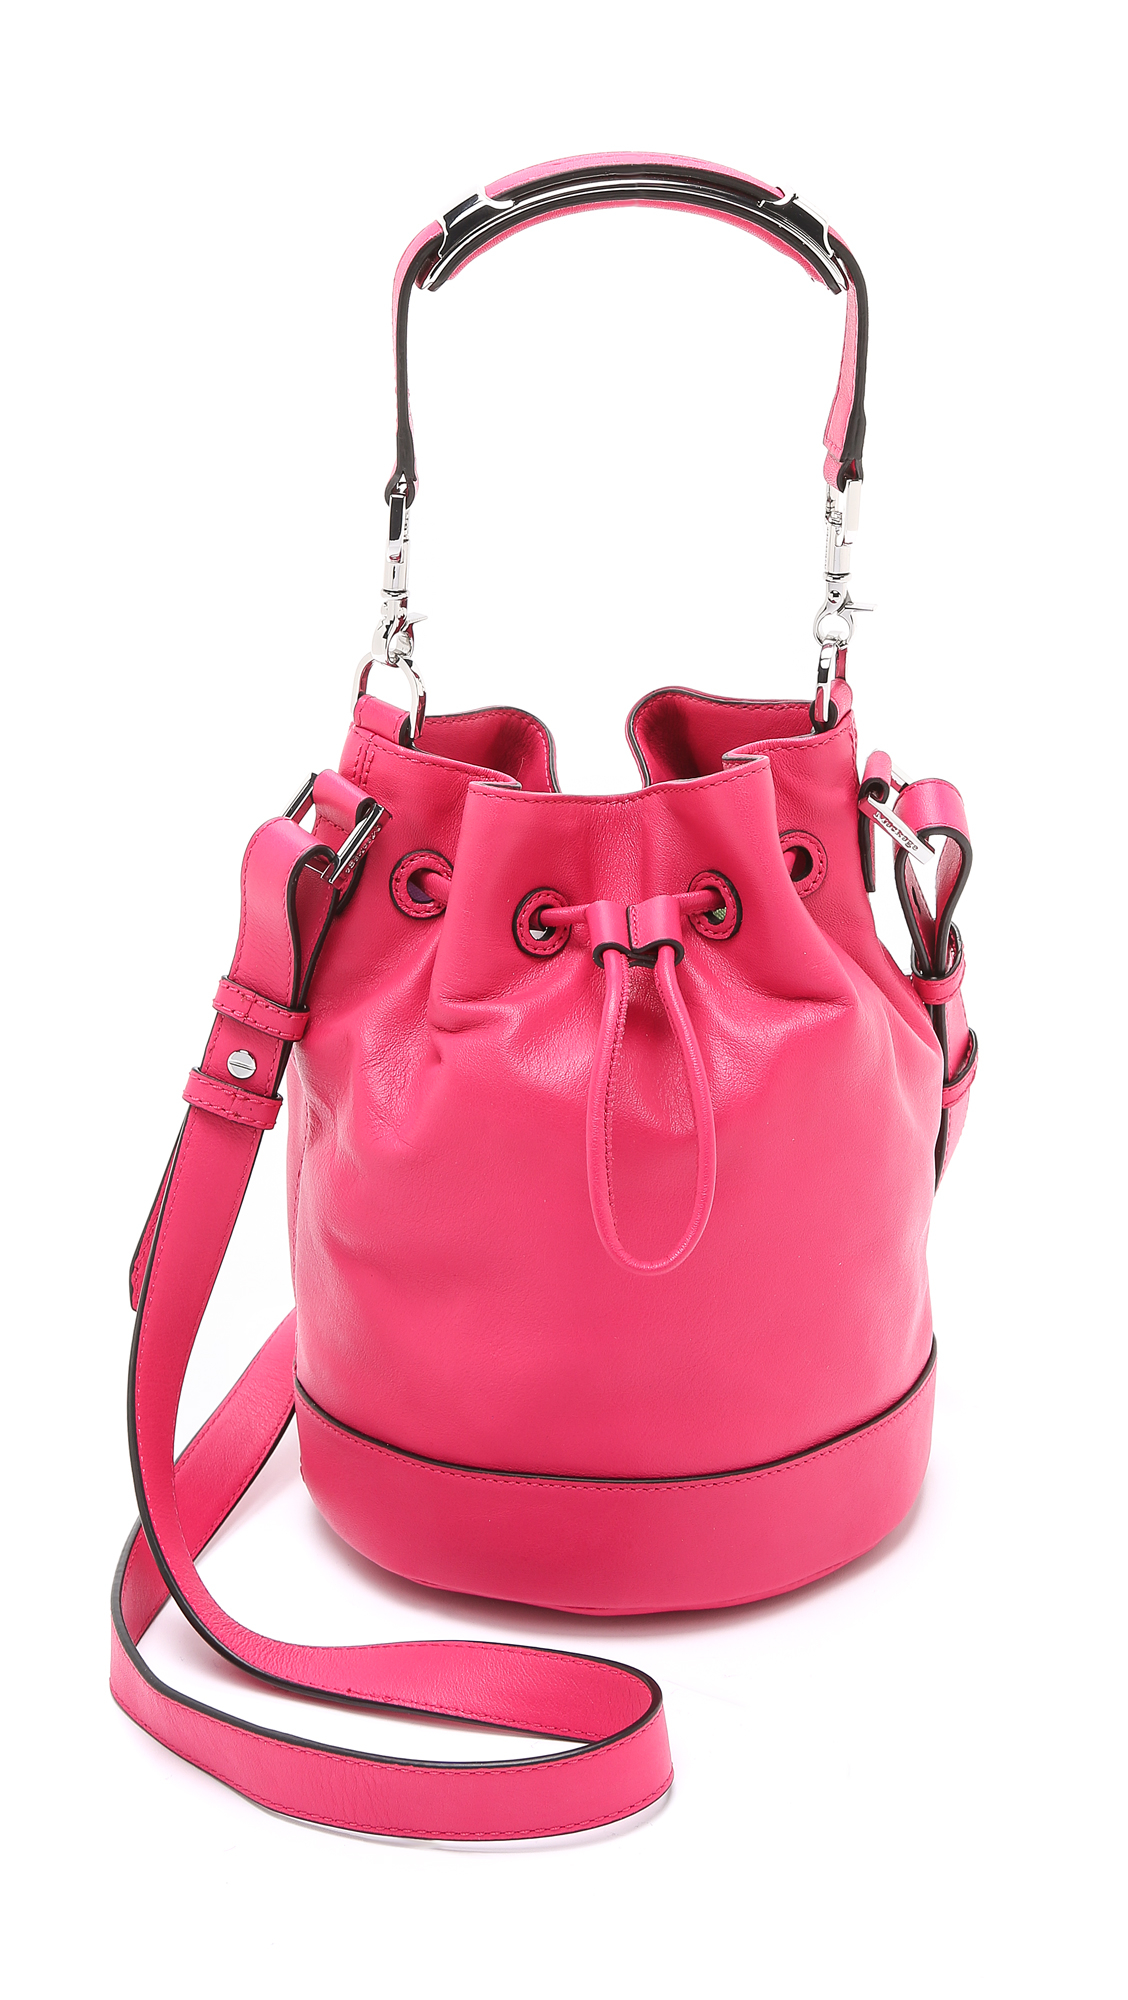 Mackage Dafney Mini Bucket Bag Hot Pink In Pink Lyst